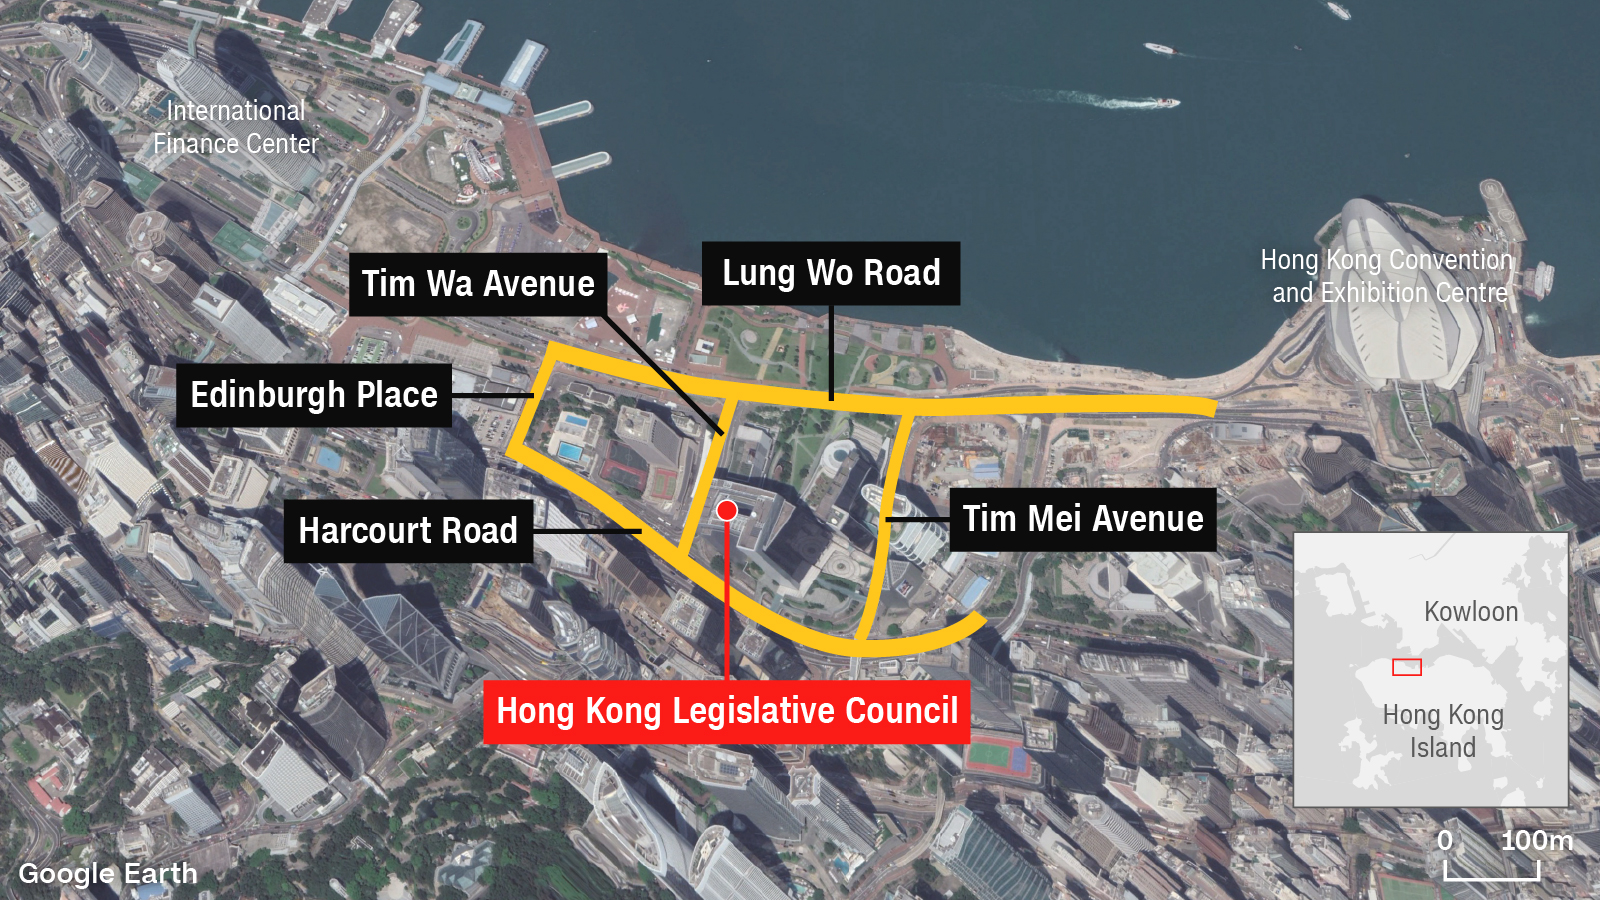 The streets surrounding Hong Kong's government headquarters are a popular route for protesters.